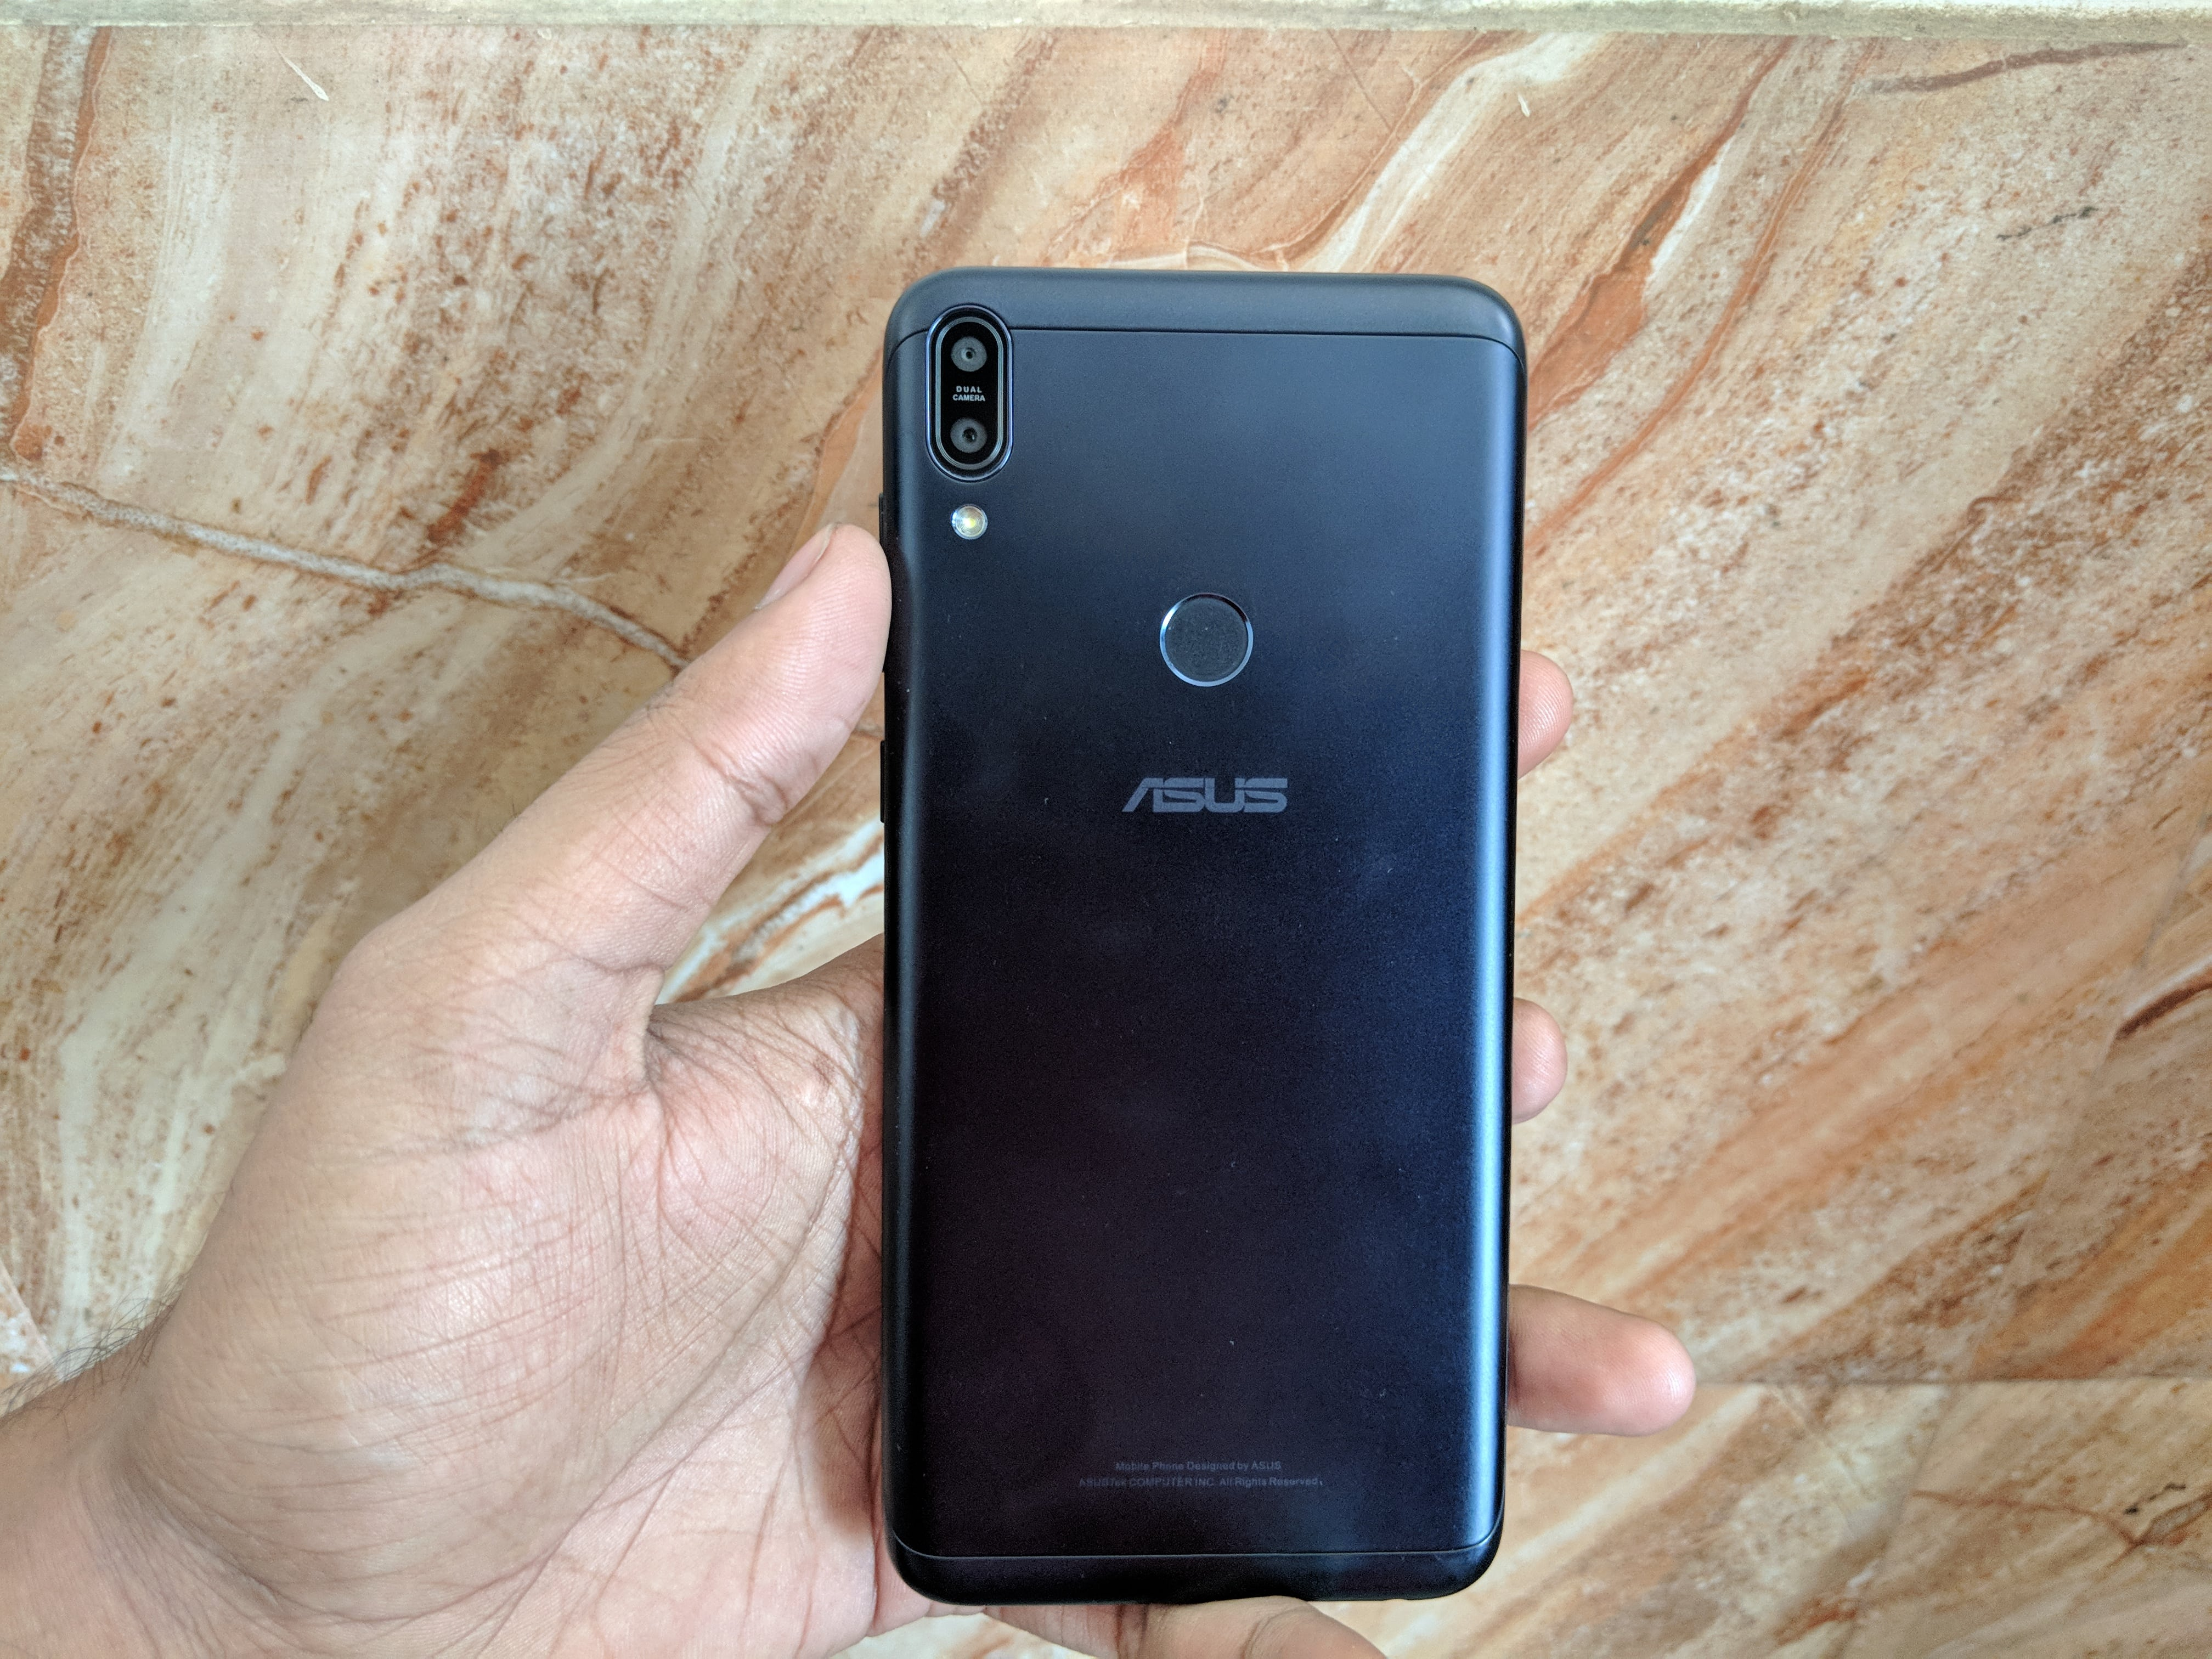 Asus Zenfone Max Pro M1 with 5 99-inch FullView display and